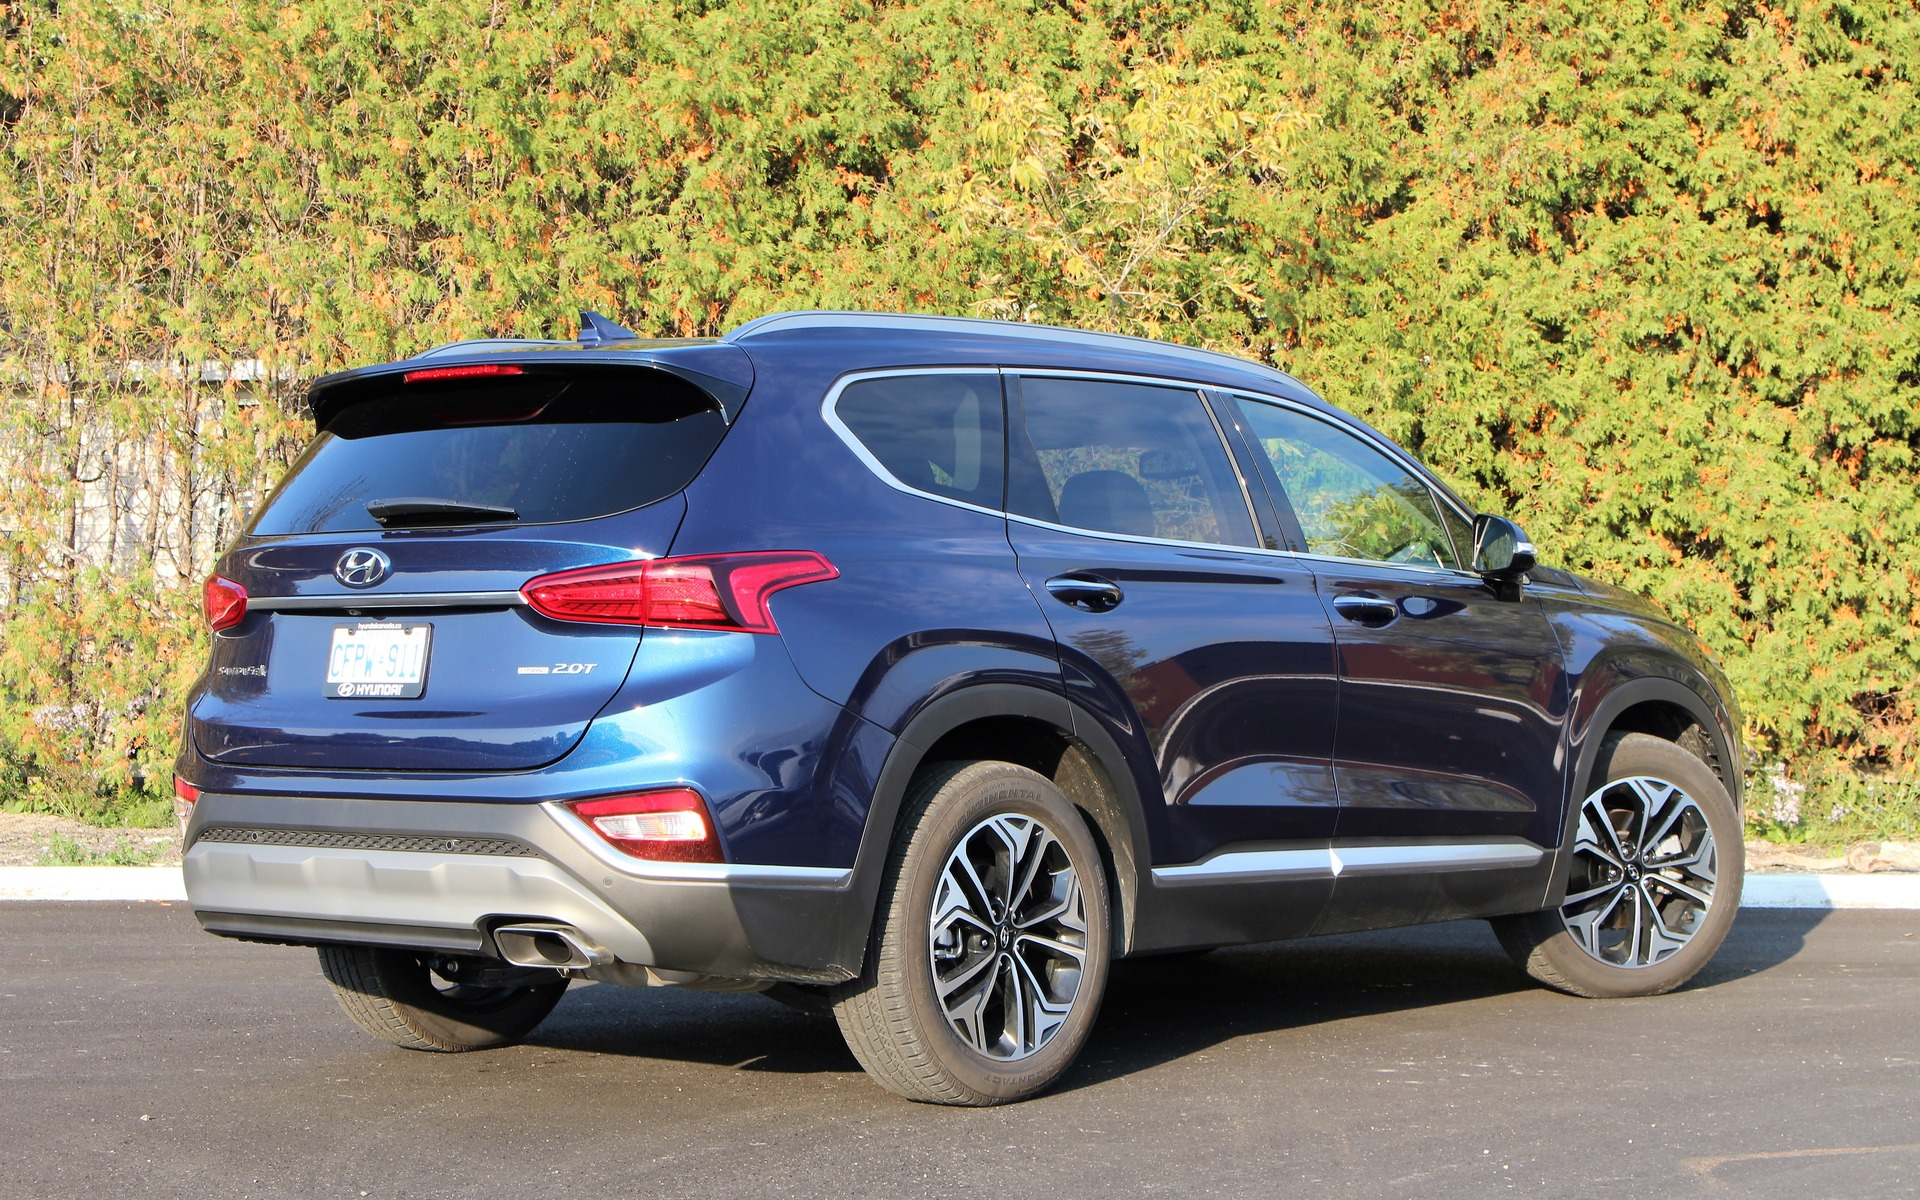 2019 Hyundai Santa Fe: A Step Up - The Car Guide